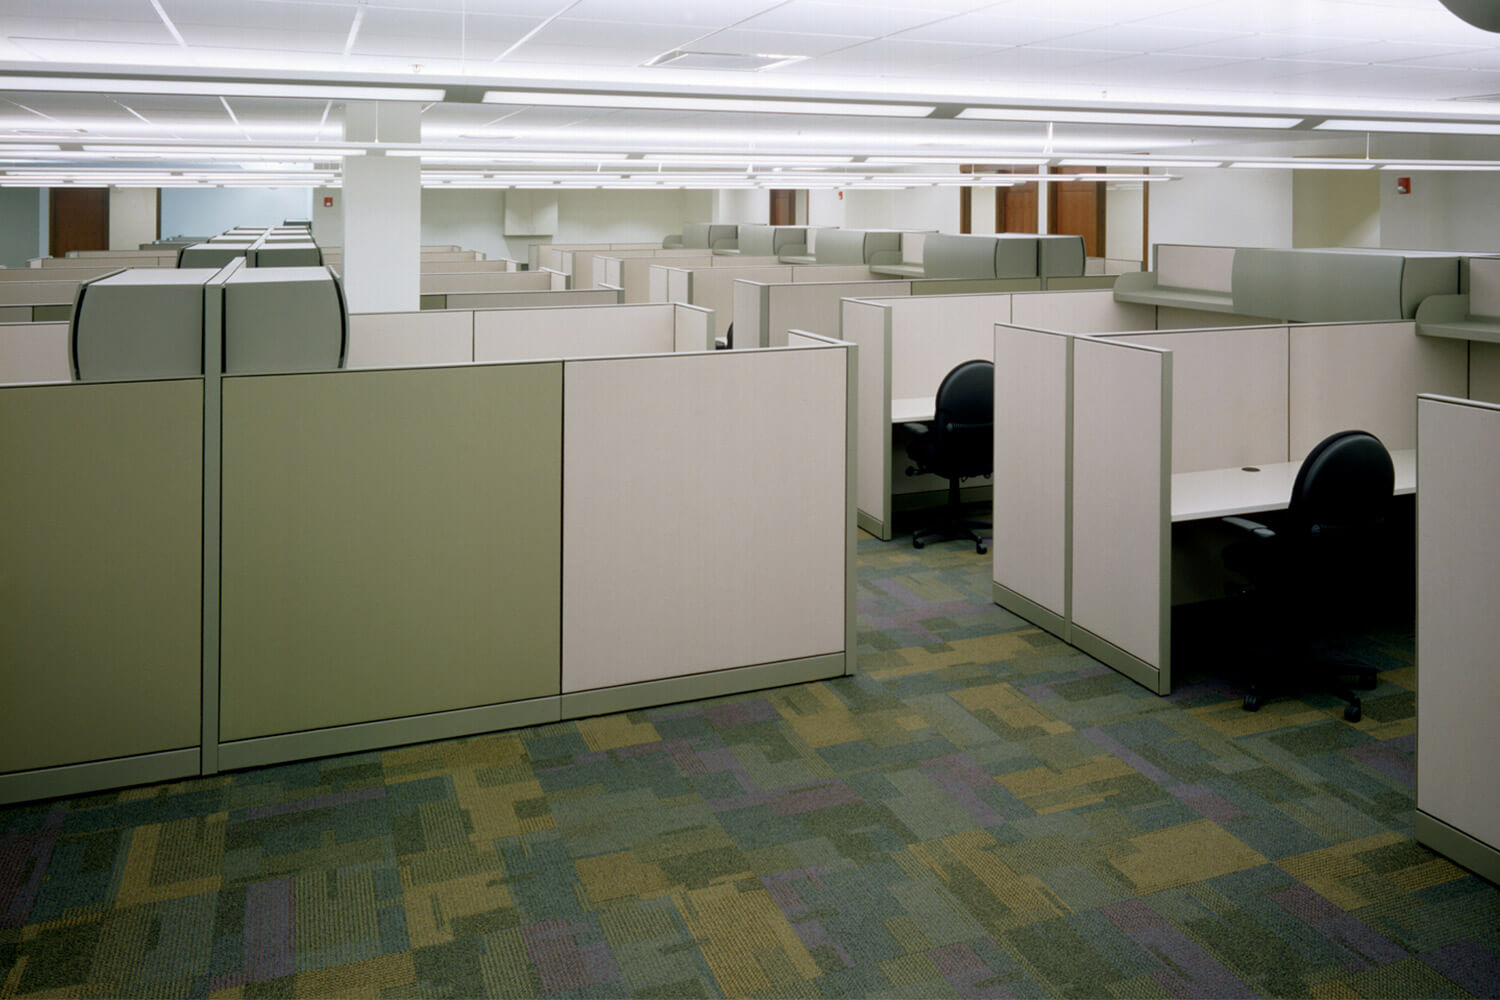 National Association of Boards of Pharmacy cubicles